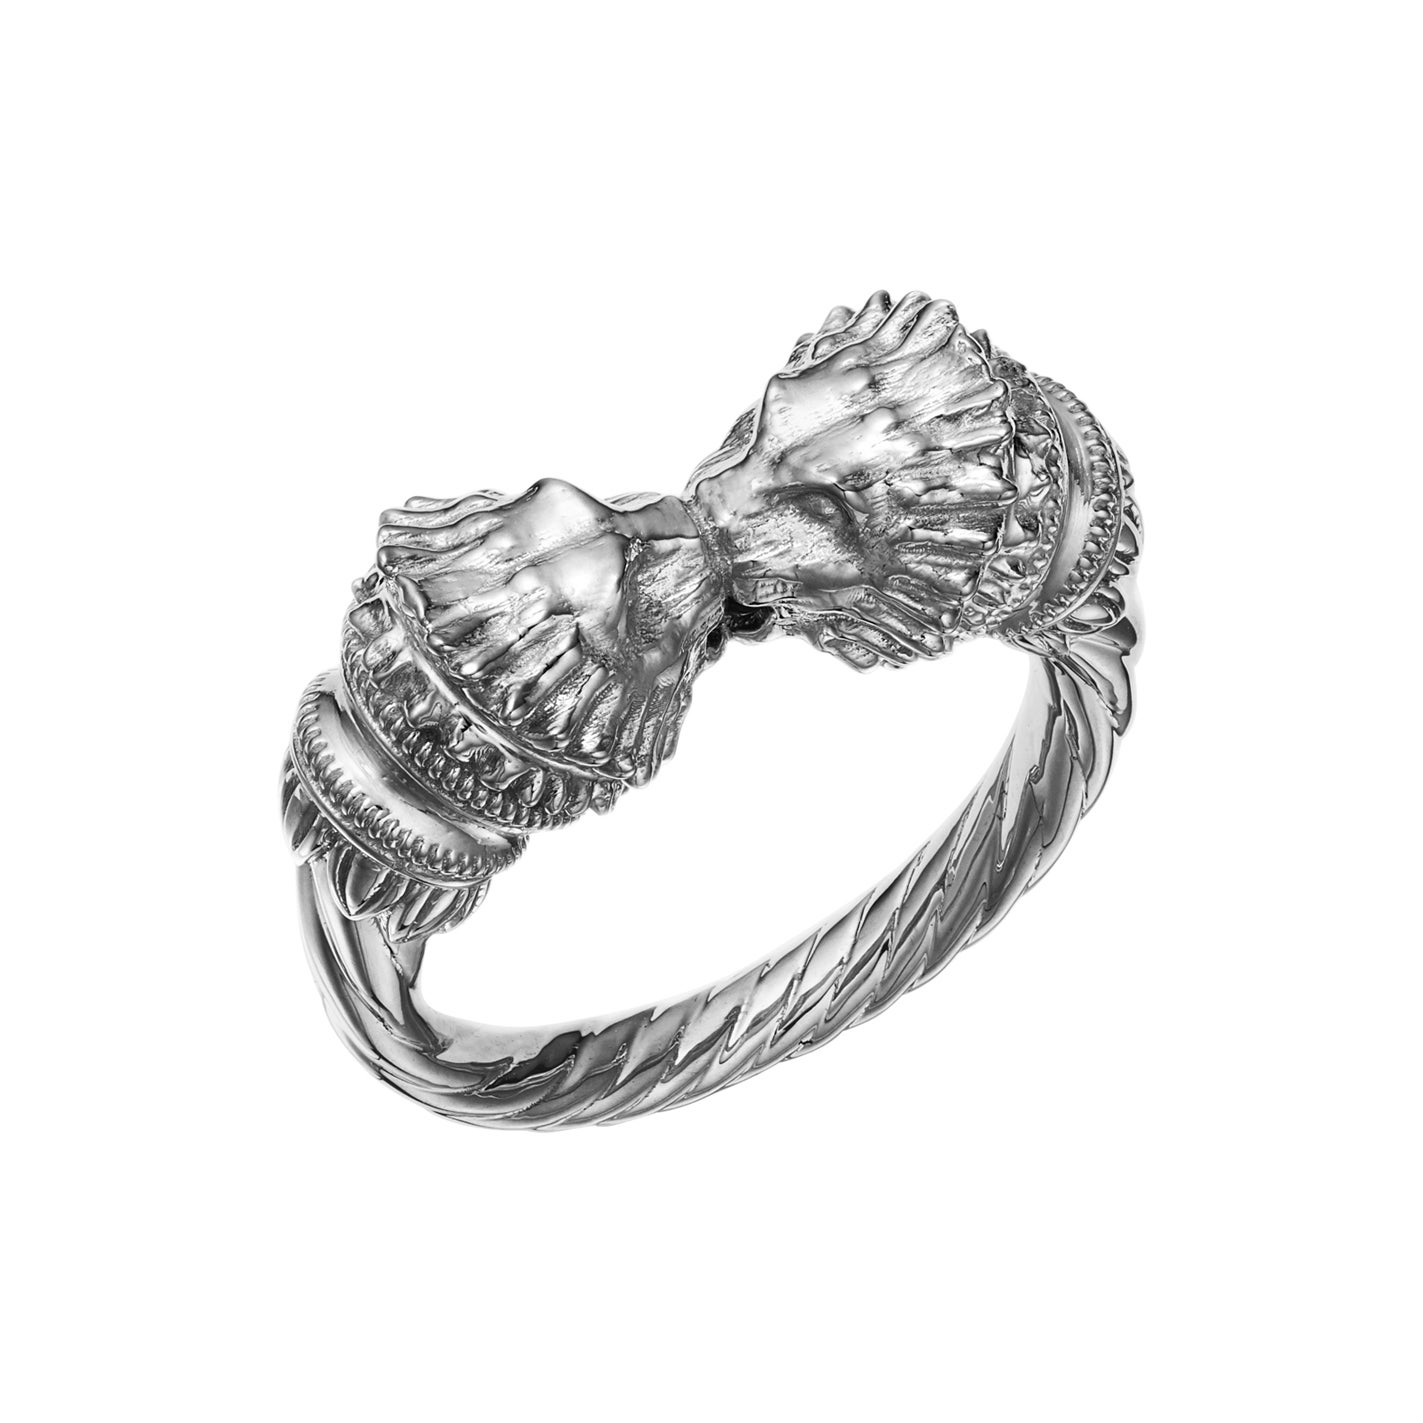 18kt Fairmined Ecological Gold Greek Lion Ring in White Gold